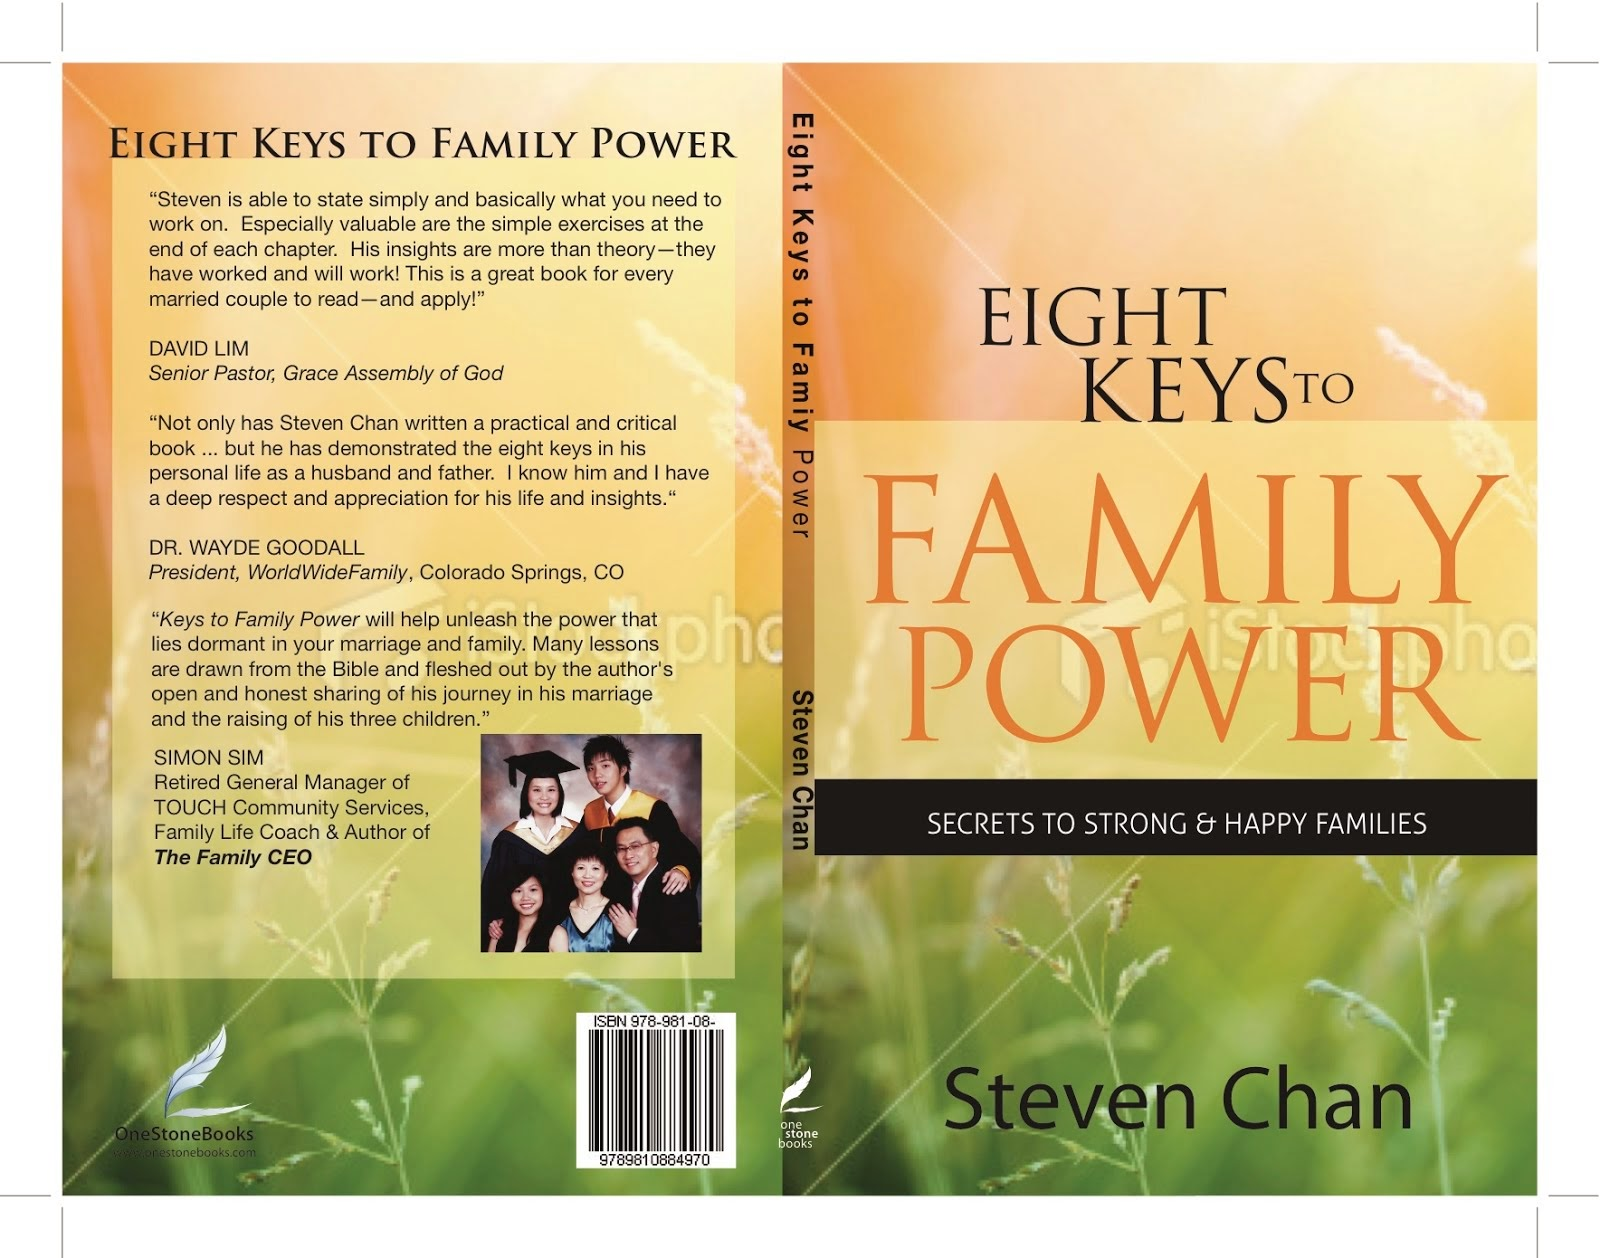 Eight Keys to Family Power